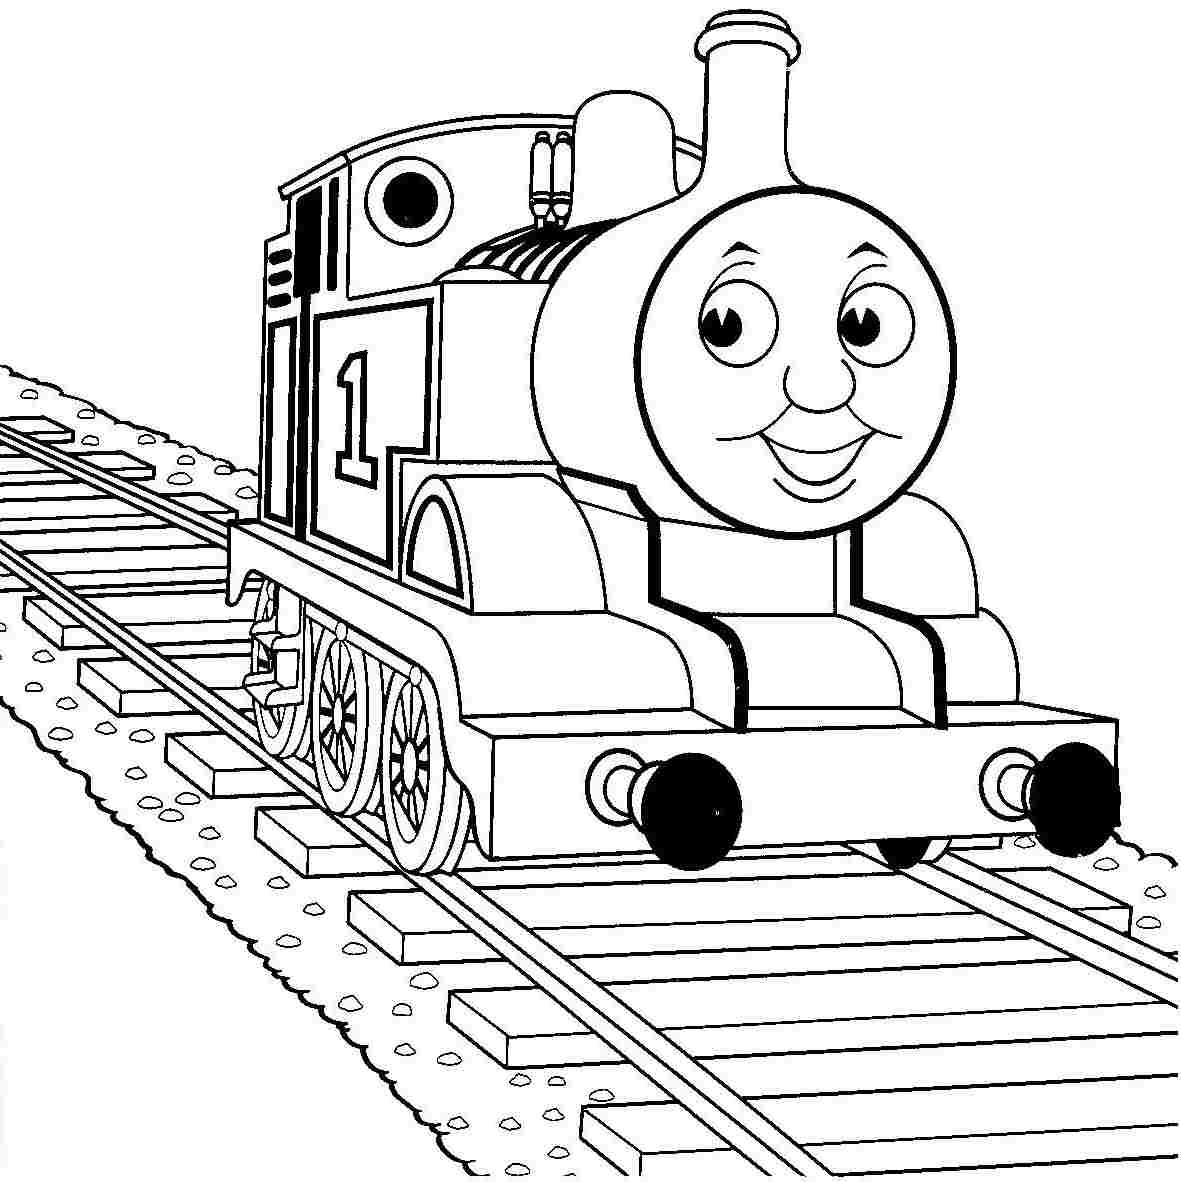 1181x1182 thomas train valentines coloring pages for boys preschool in - Coloring Pages Trains